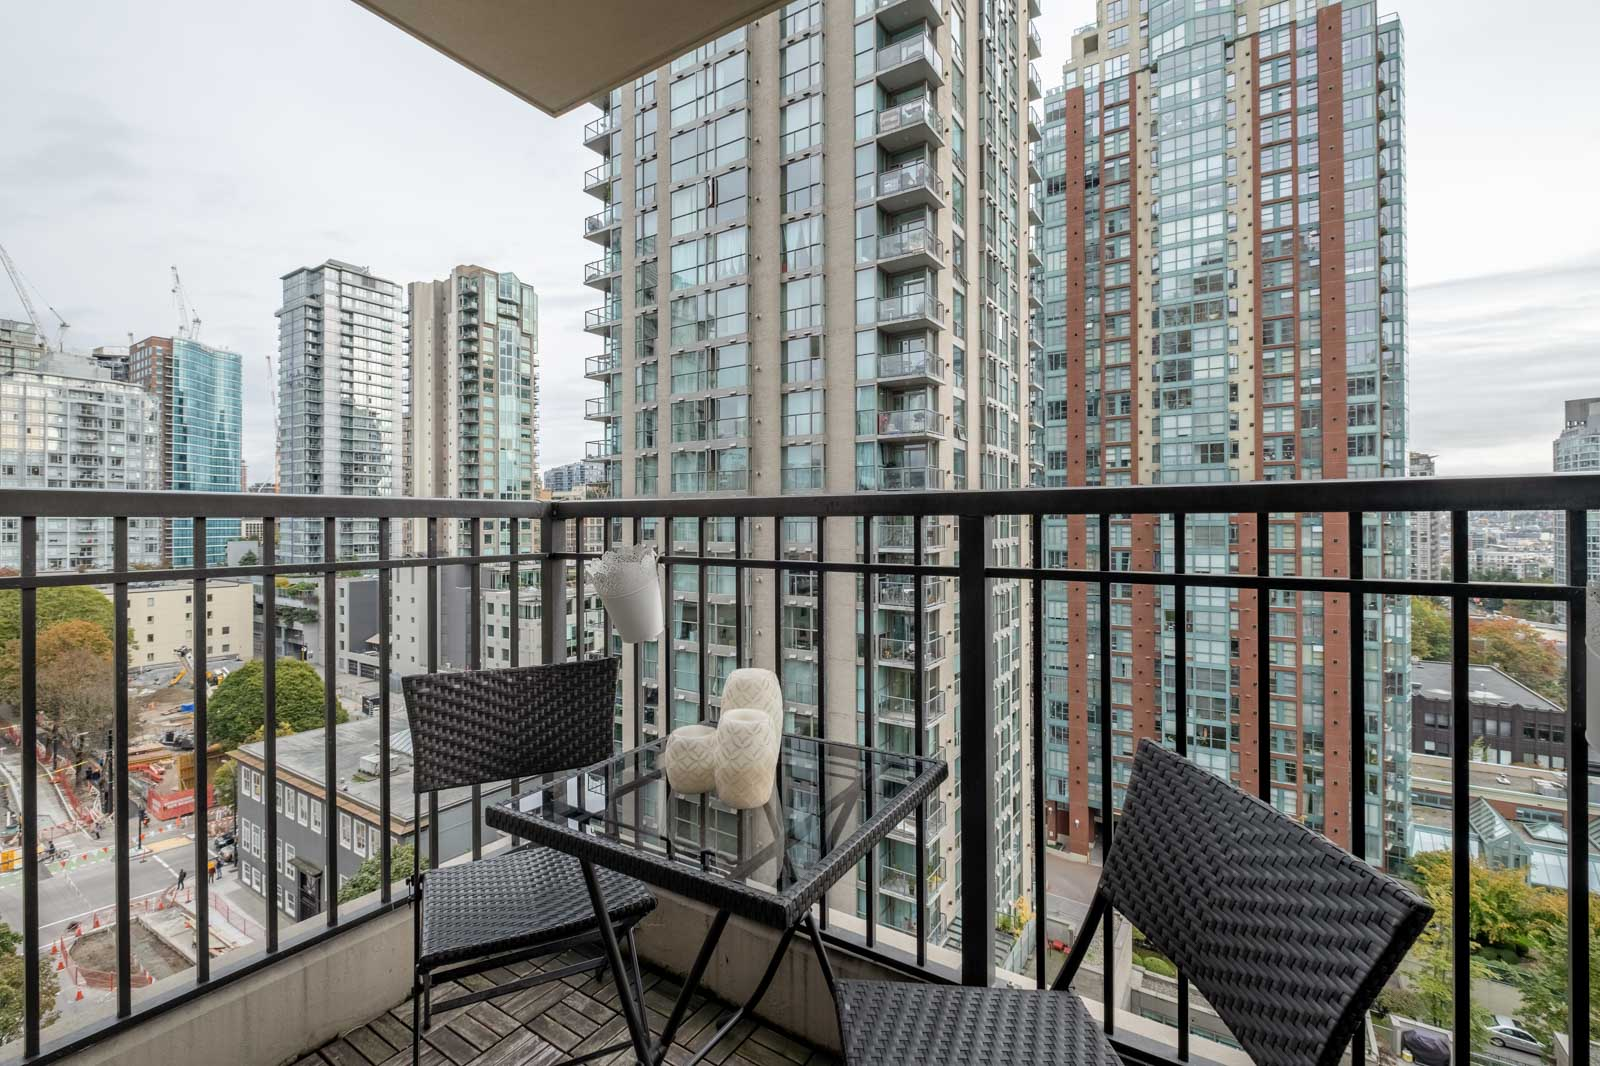 balcony with chairs and table in rental condo managed by birds nest properties at mondrian 2 building in yaletown vancouver